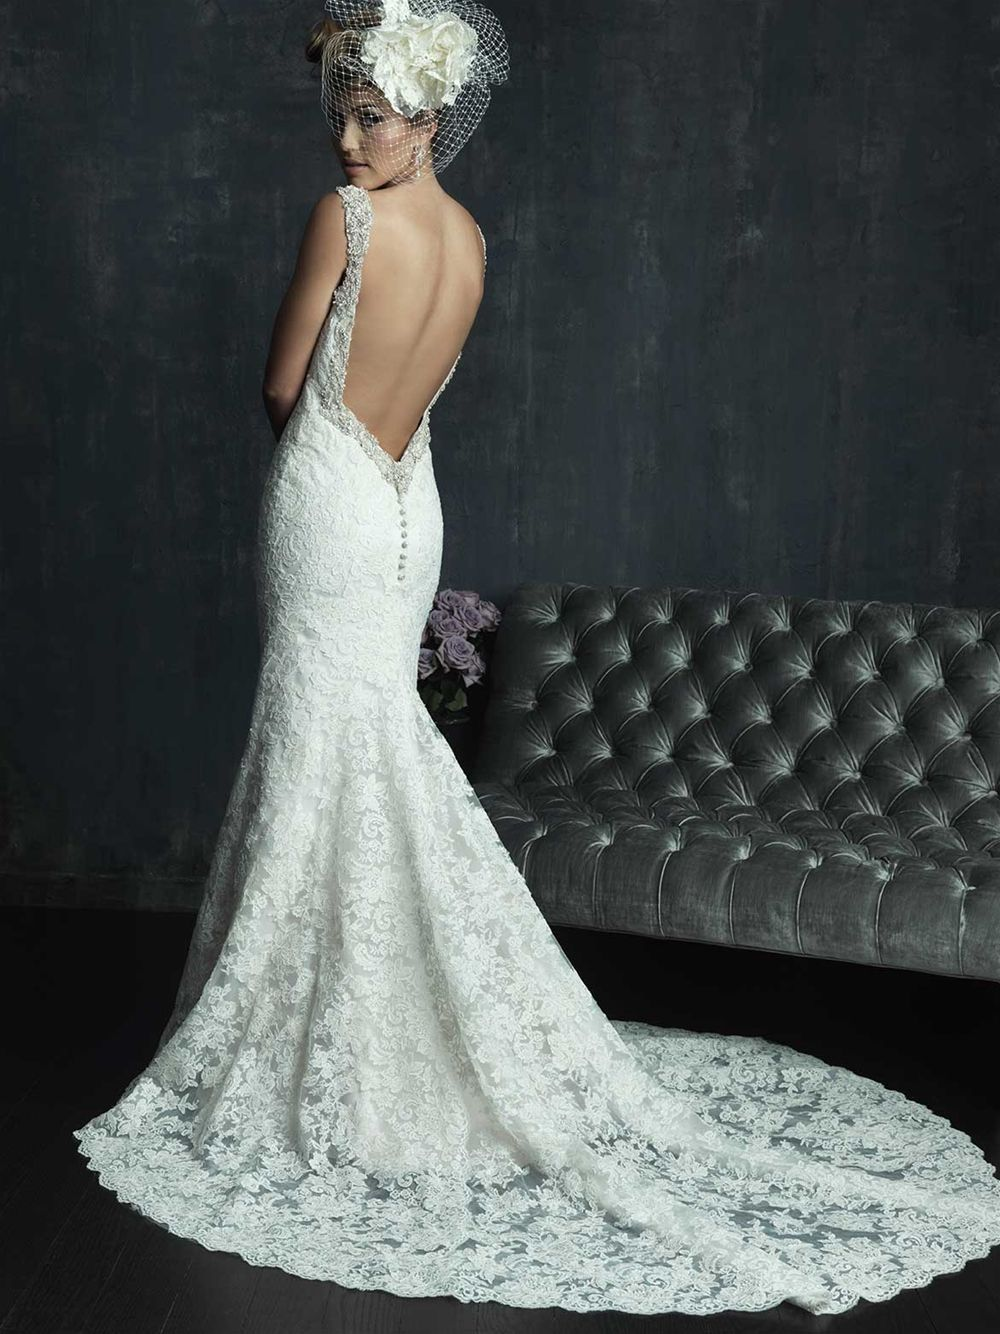 Allure Couture Sacramento Wedding Gowns And Dresses Best Bridal Boutique